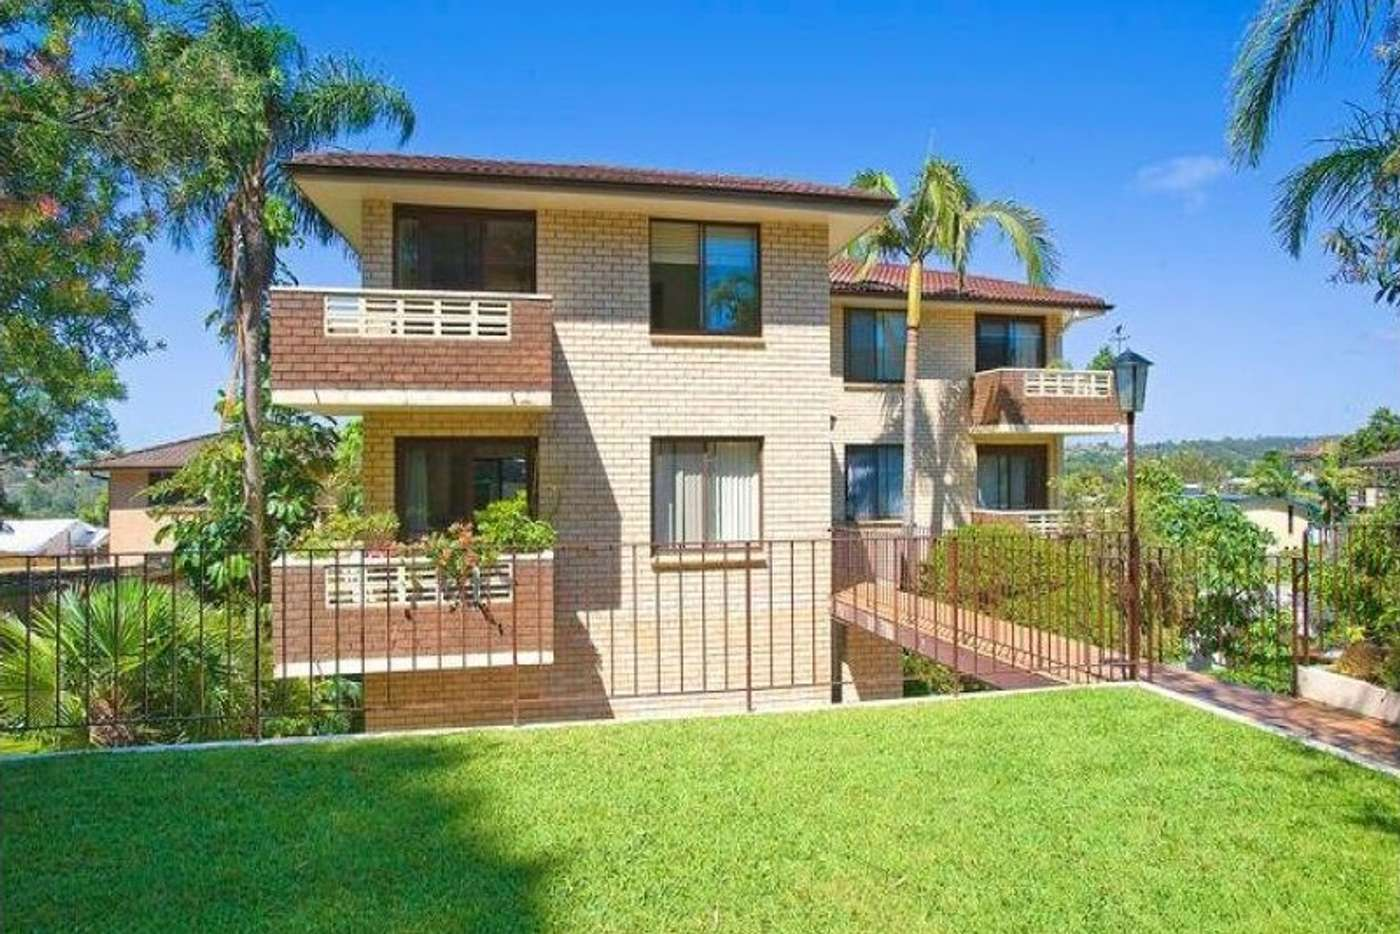 Main view of Homely apartment listing, 7/30 Dalley Street, Queenscliff NSW 2096